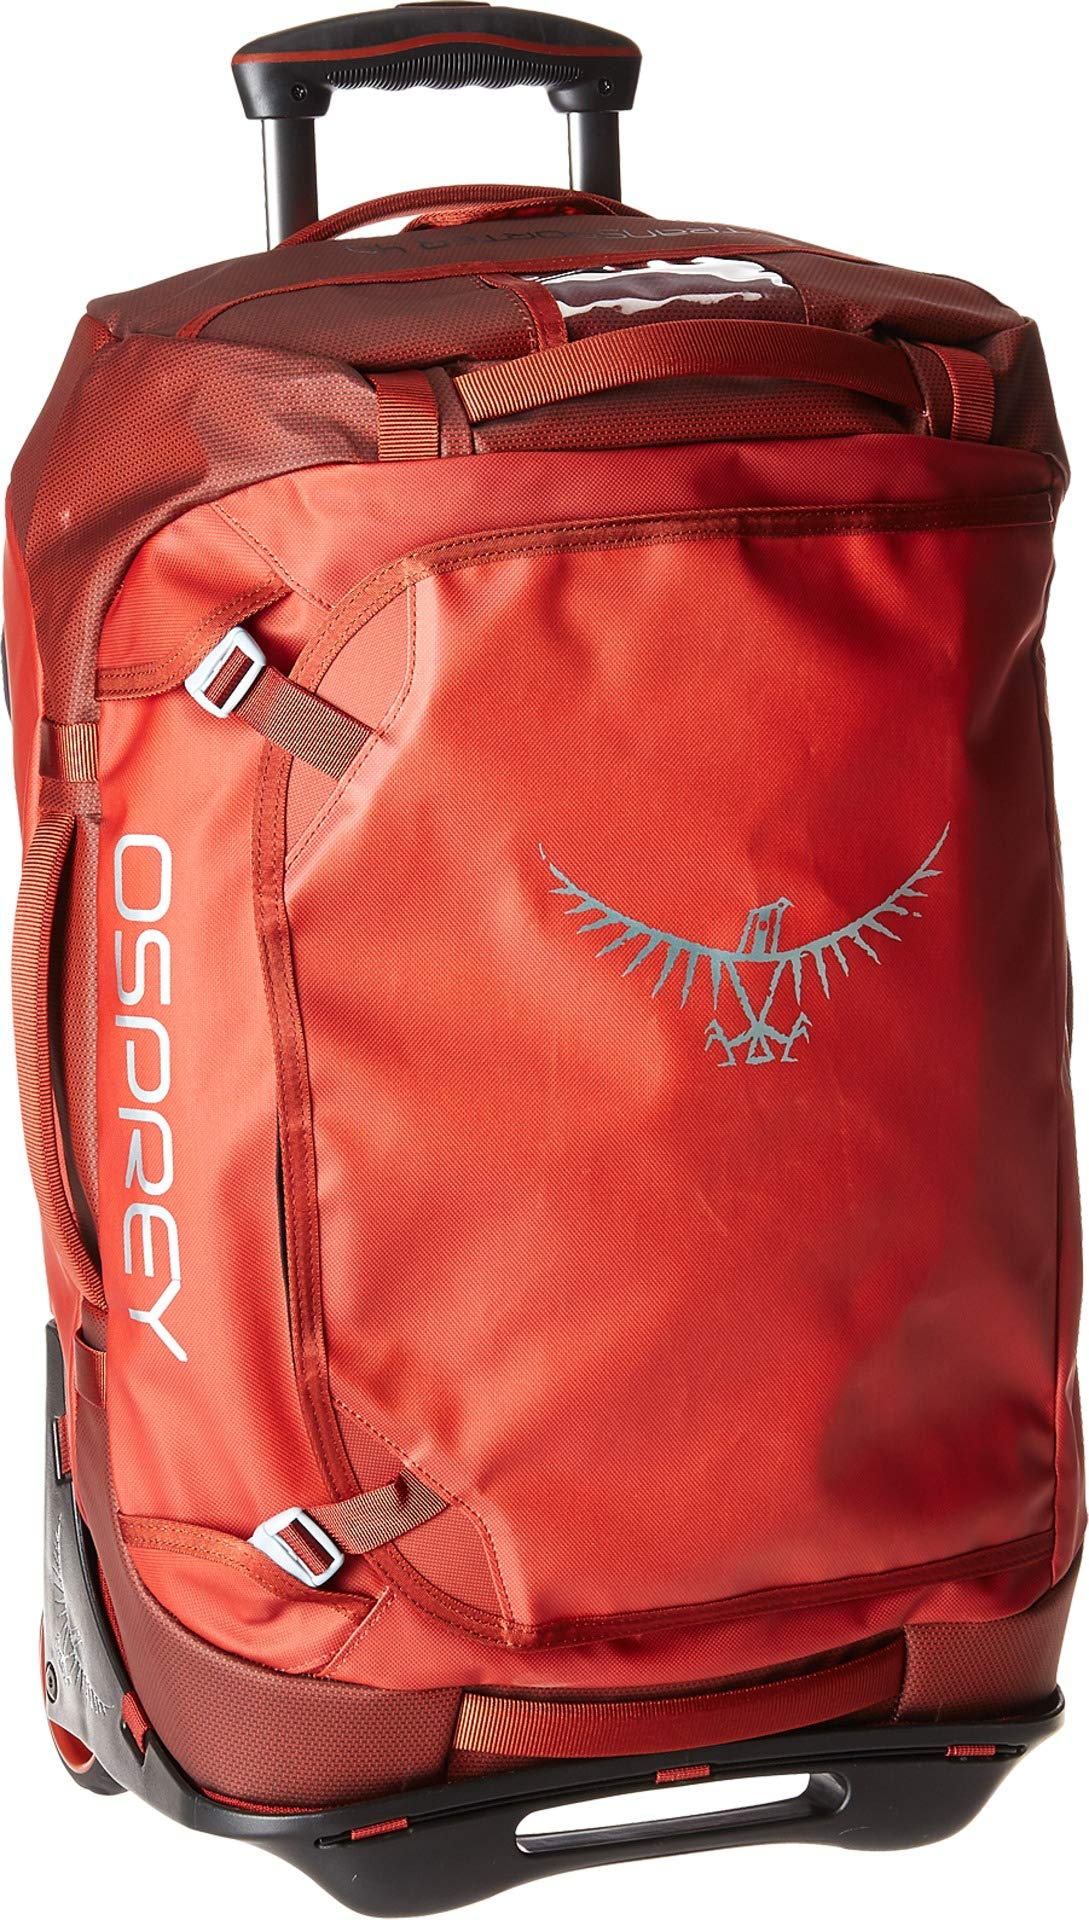 Osprey Packs Rolling Transporter 40 Duffel Bag, Ruffian Red